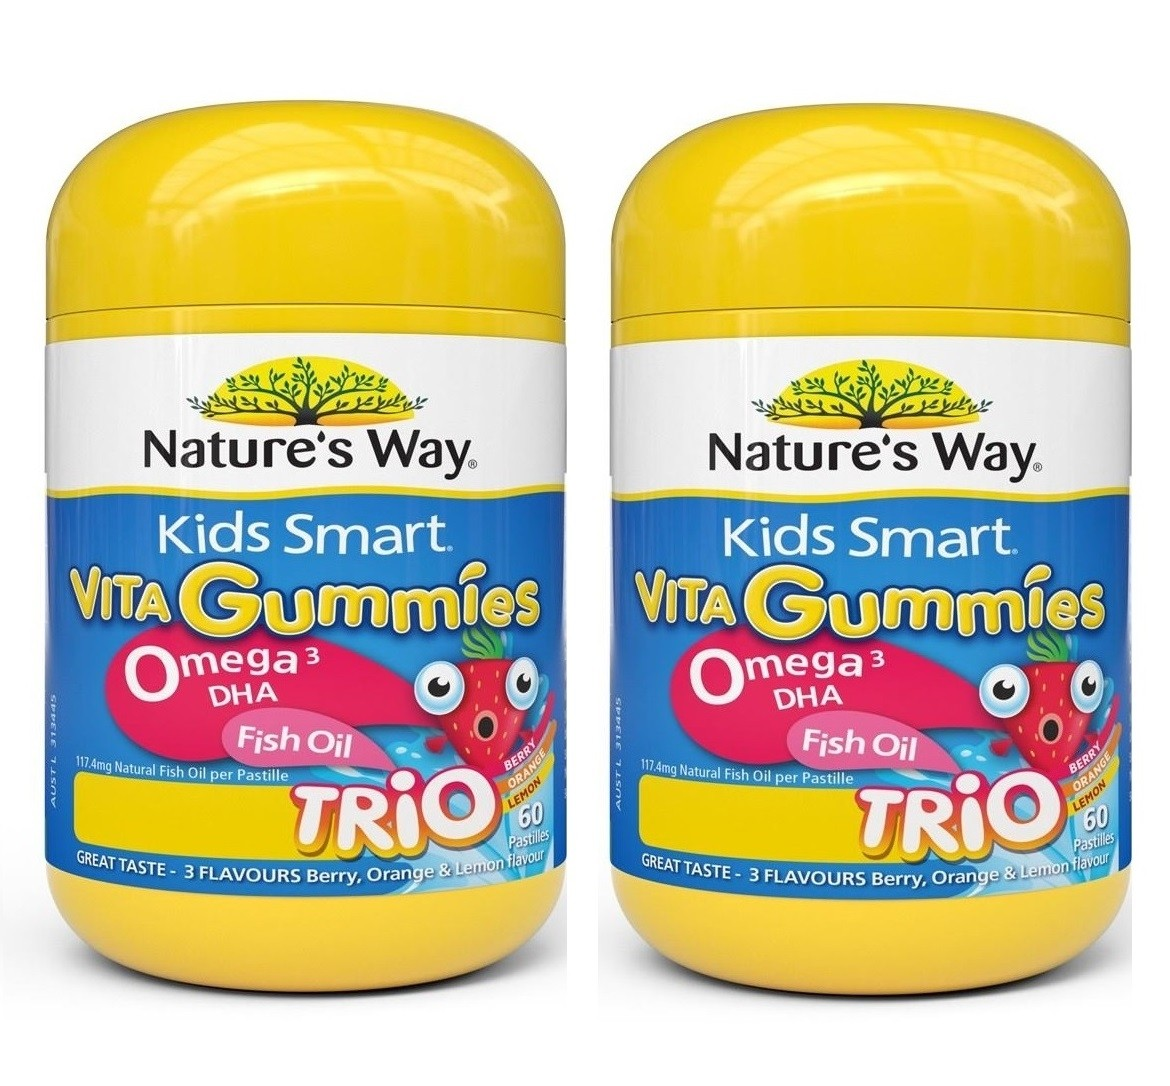 Nature's Way- Kids Smart Vita Gummies Omega 3 Fish Oil Twin Pack 60 Pastilles